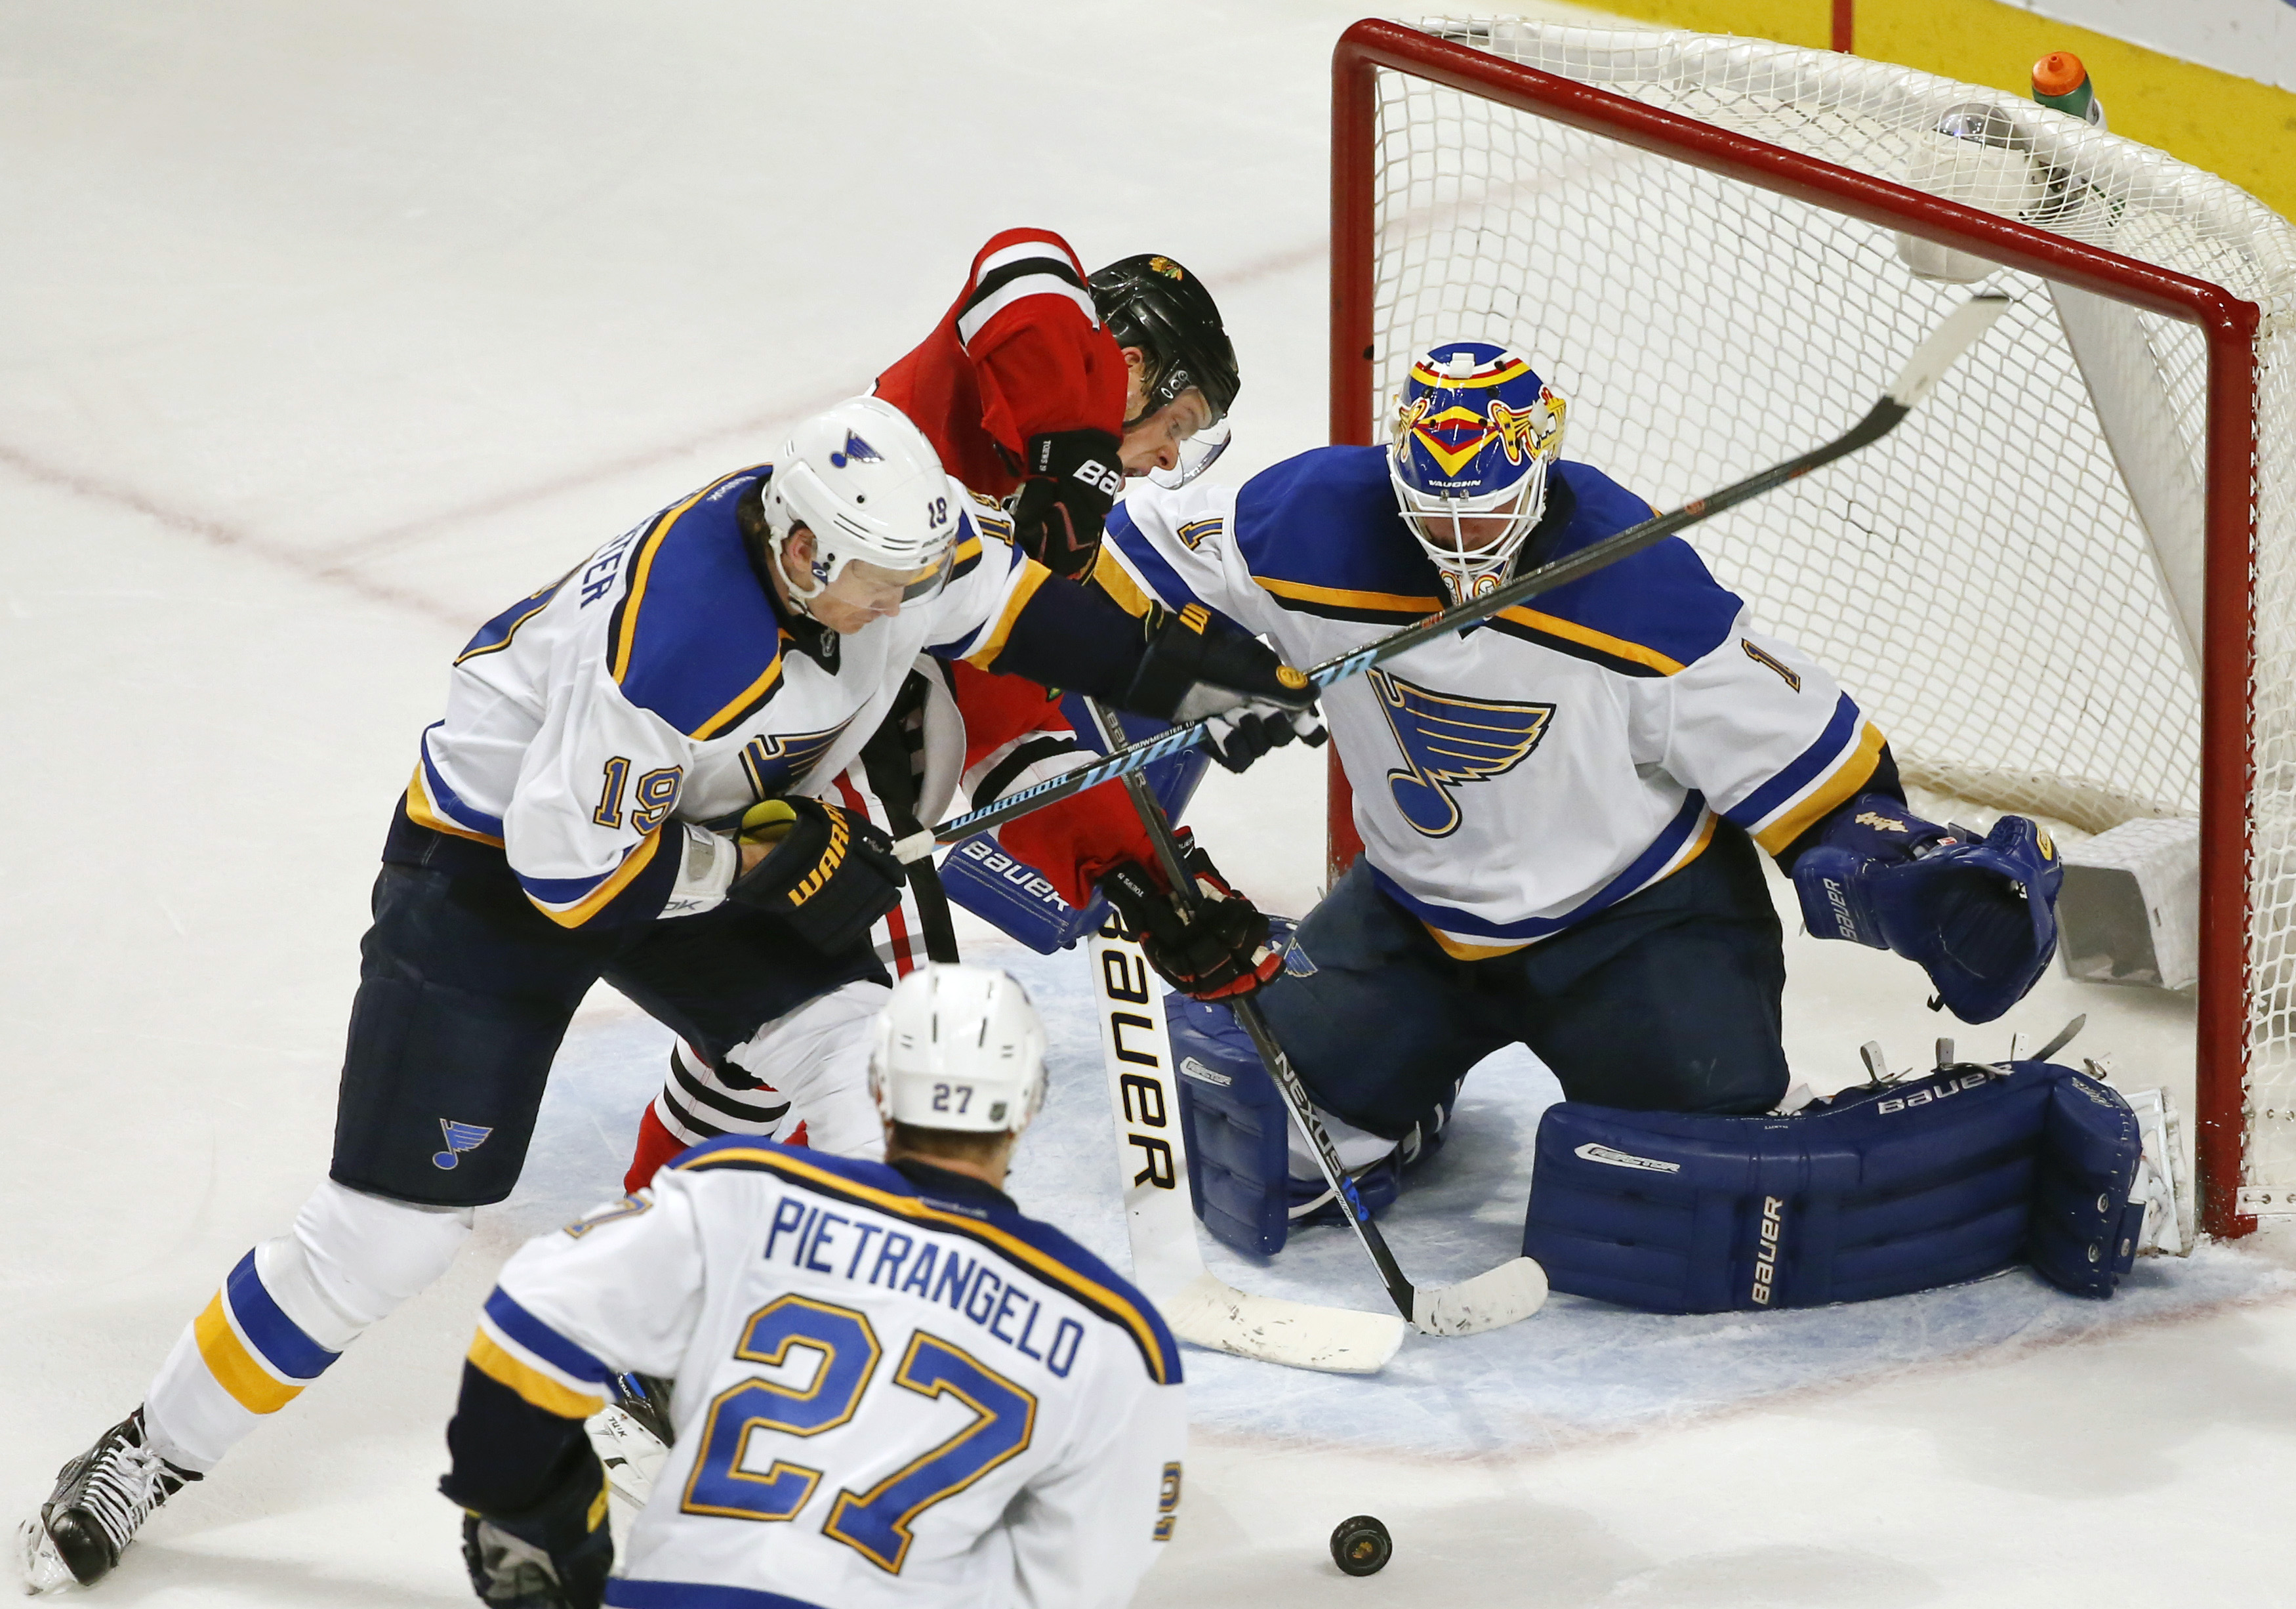 Chicago Blackhawks center Jonathan Toews, center, tries to score against St. Louis Blues goalie Brian Elliott, right, and defenseman Jay Bouwmeester, left, during the second period of an NHL hockey game Thursday, April 7, 2016, in Chicago. (AP Photo/Kamil